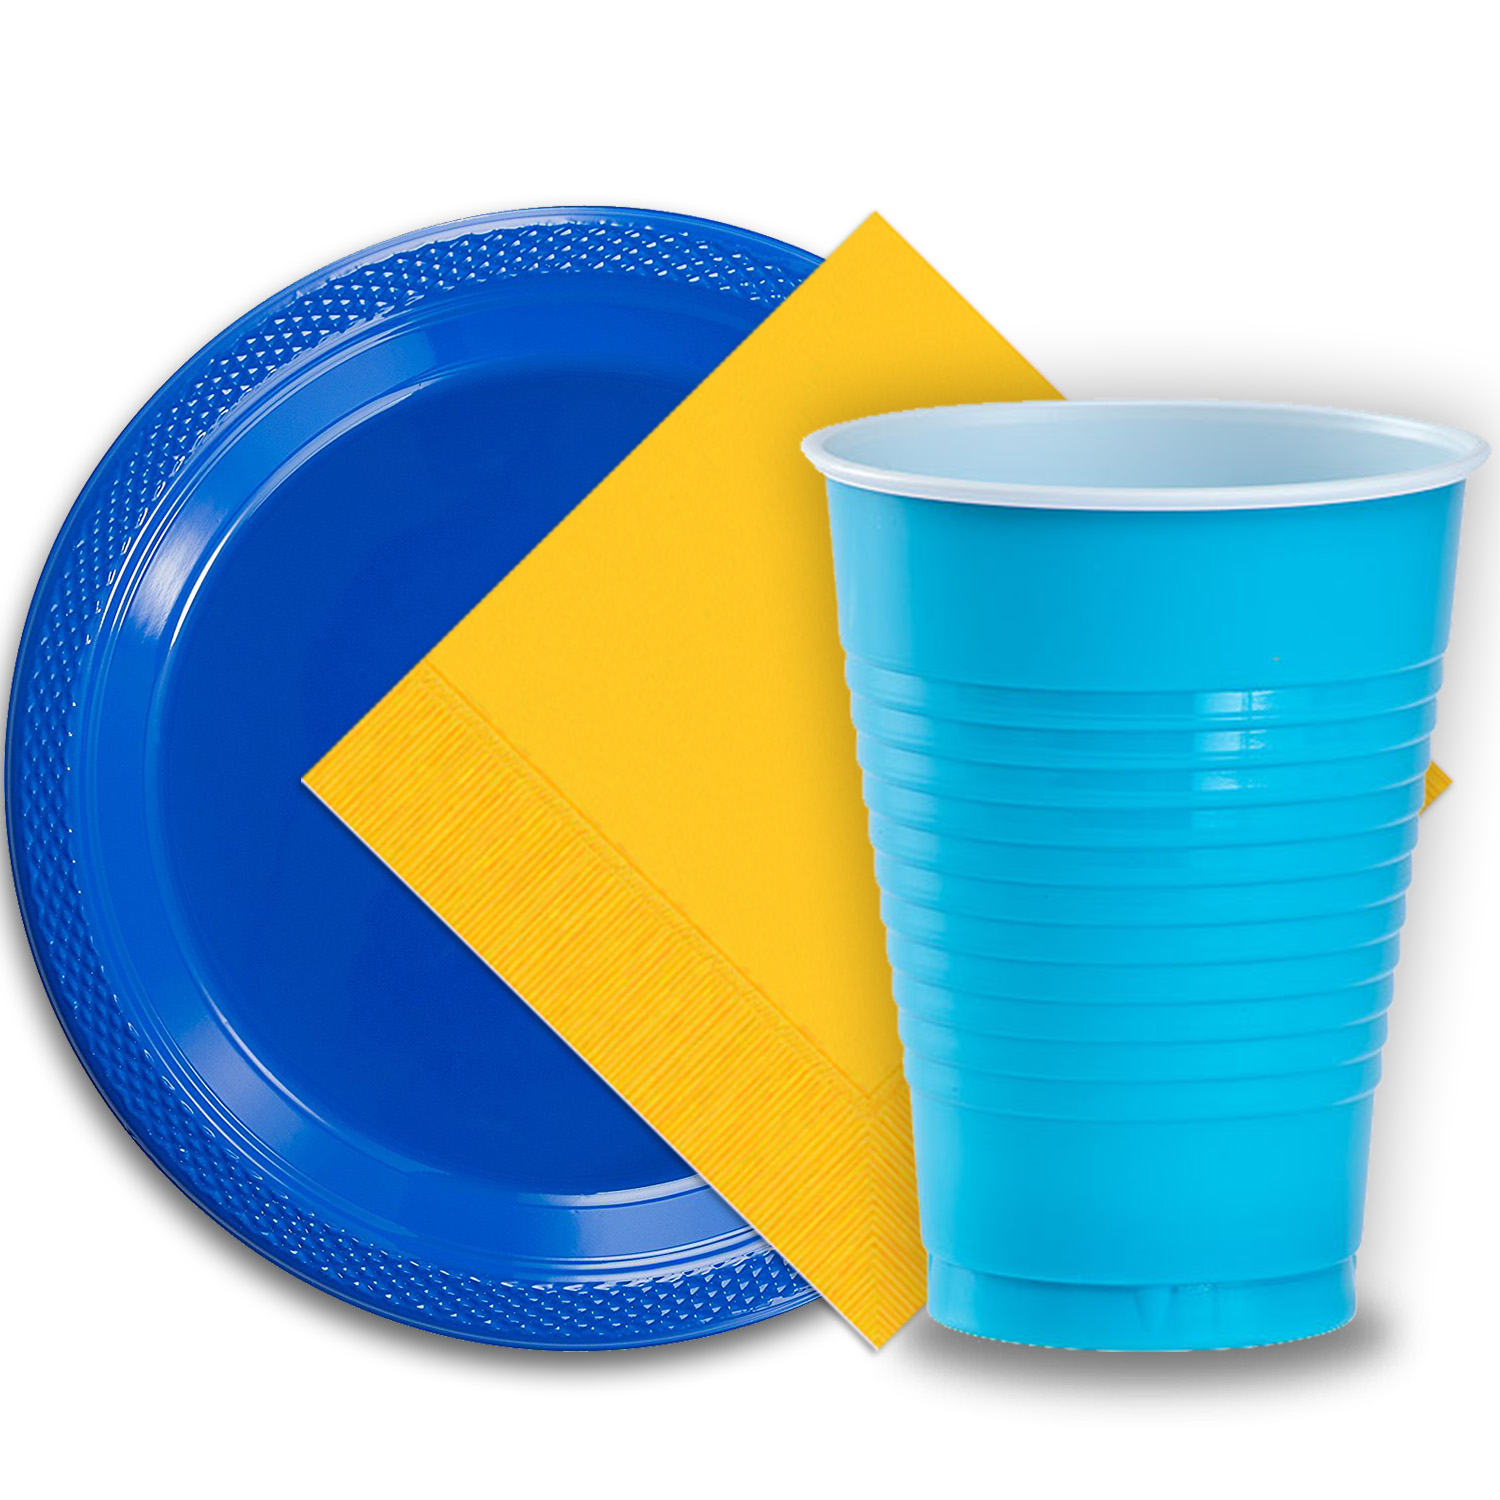 """50 Dark Blue Plastic Plates (9""""), 50 Aqua Plastic Cups (12 oz.), and 50 Yellow Paper Napkins, Dazzelling Colored Disposable Party Supplies Tableware Set for Fifty Guests."""